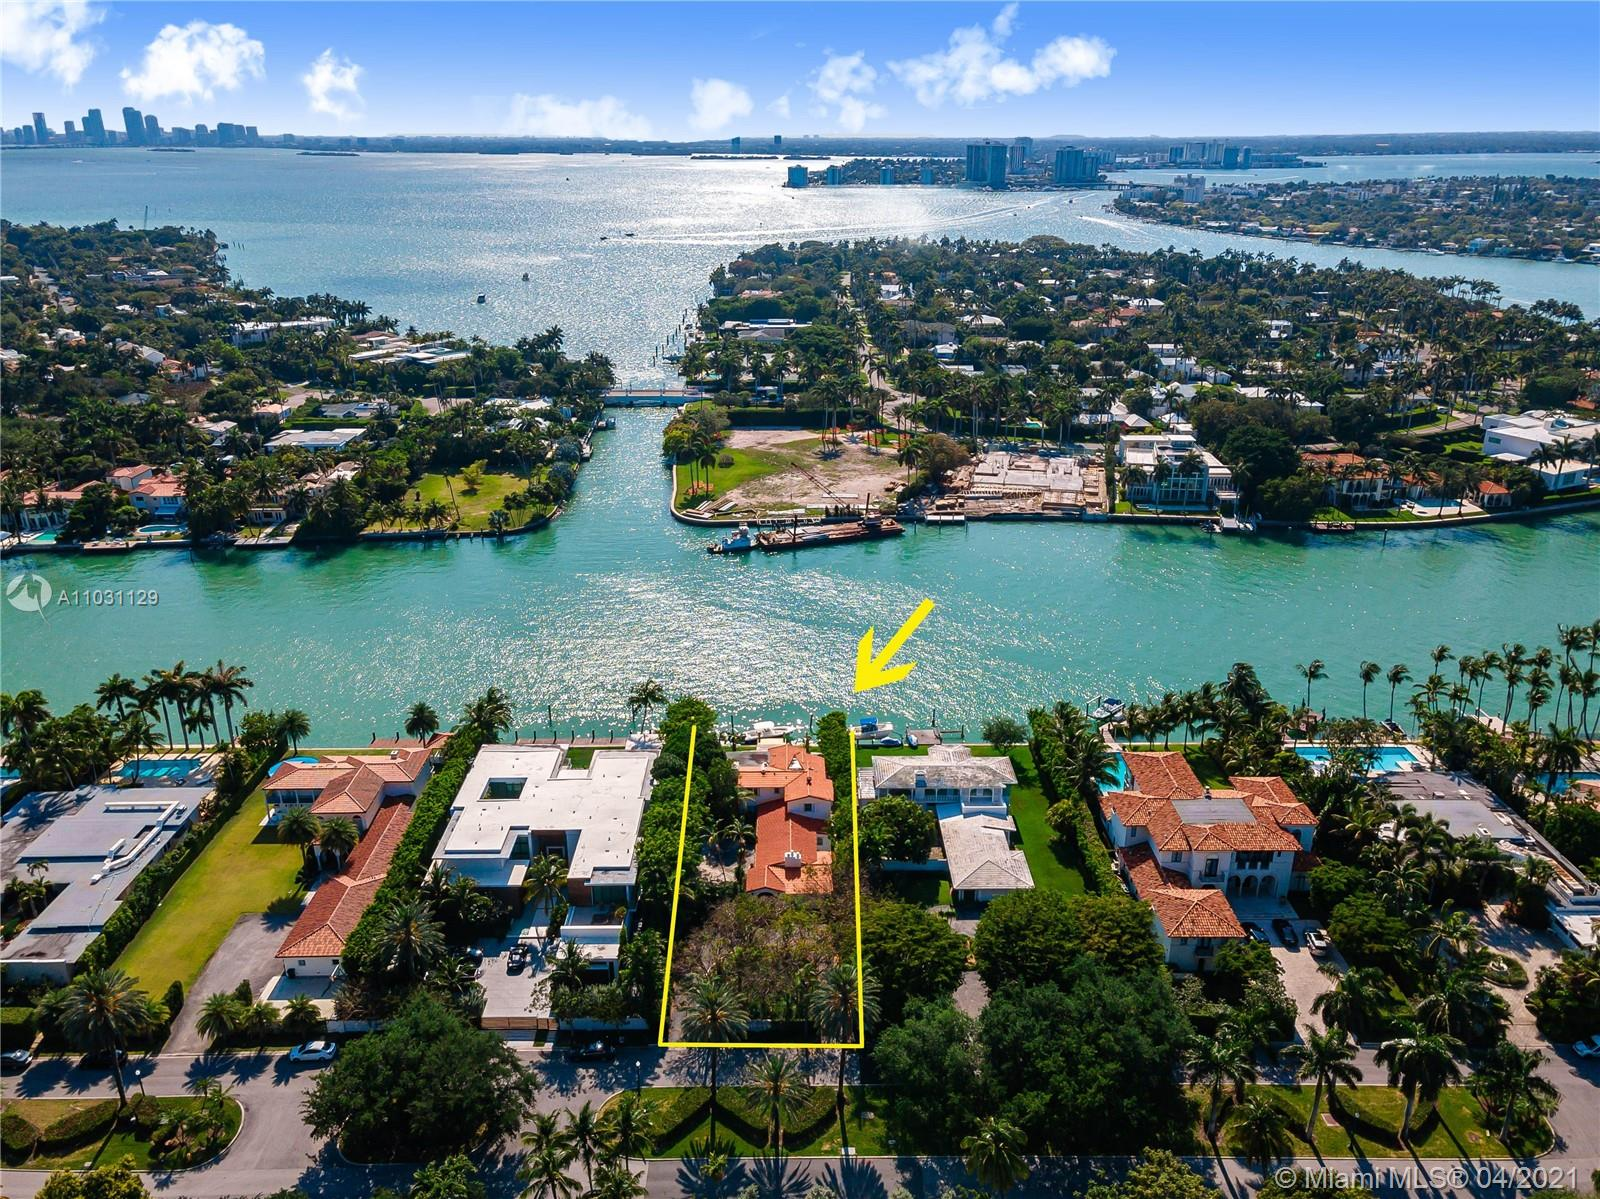 Allison Island is home to celebrities, entrepreneurs & professional athletes. Recognized for its privacy, security, & incredible waterfront location, this is a rare opportunity to live your own personal paradise on over 75 ft of waterfront, with no fixed bridges to the open bay & ocean. Regarded as one of the most coveted waterfront lots, this 16,200+ SF property includes architectural drawings for a palatial estate & dock, by renowned architect, Choeff Levy Fischman. Uniquely positioned, this prime homesite boasts a western exposure highlighted by endless sunset views. The prestigious community of roughly 50 residences is home to some of the world's most recognized residents, including Michael Burke- CEO of Louis Vuitton; Rapper Lil Wayne; & Top Sports Agent Drew Rosenhaus, to name a few.